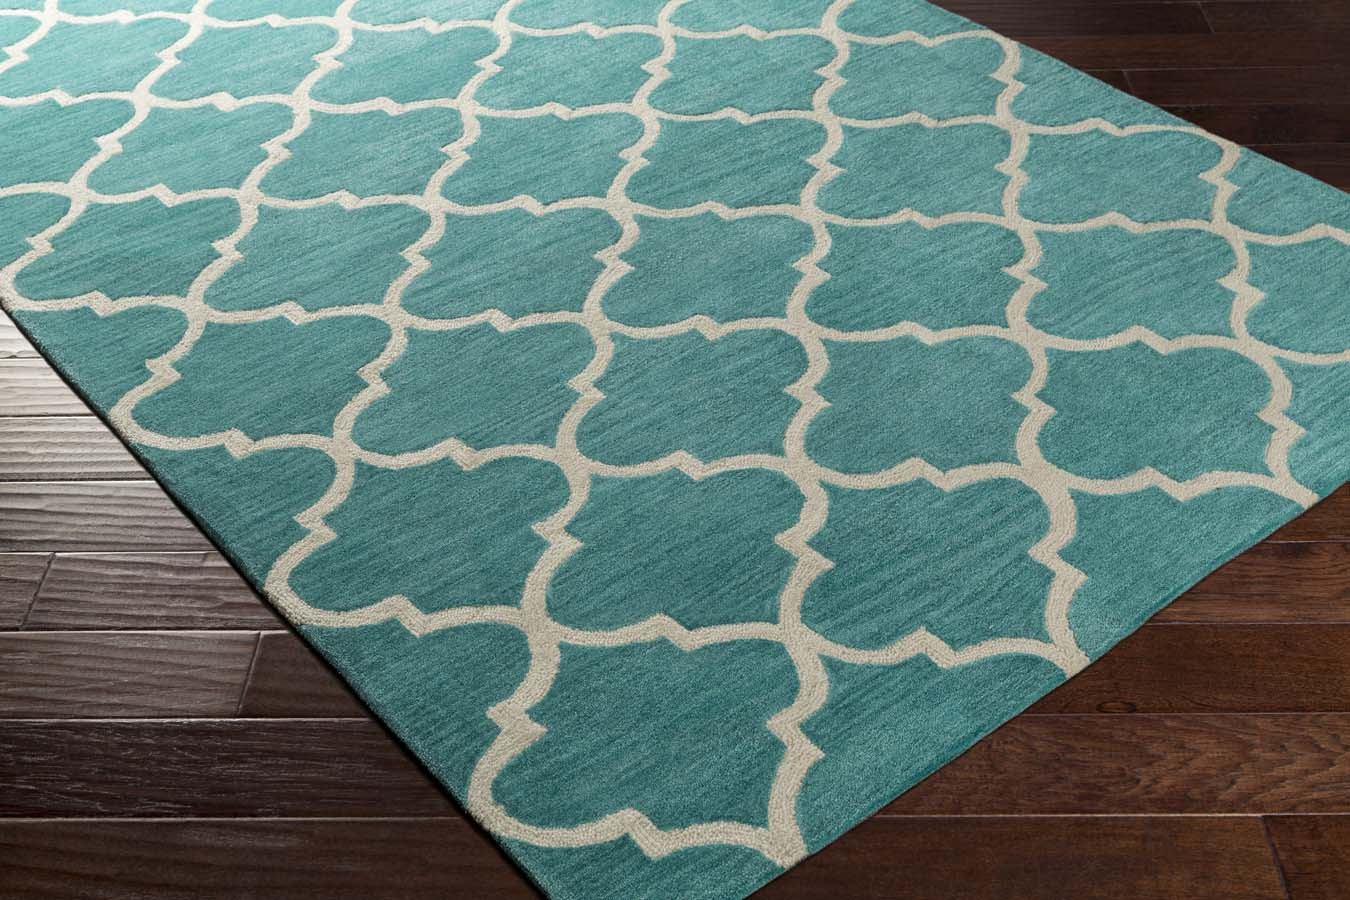 Artistic Weavers Holden AWHL-1009 Finley Teal/Ivory Rug